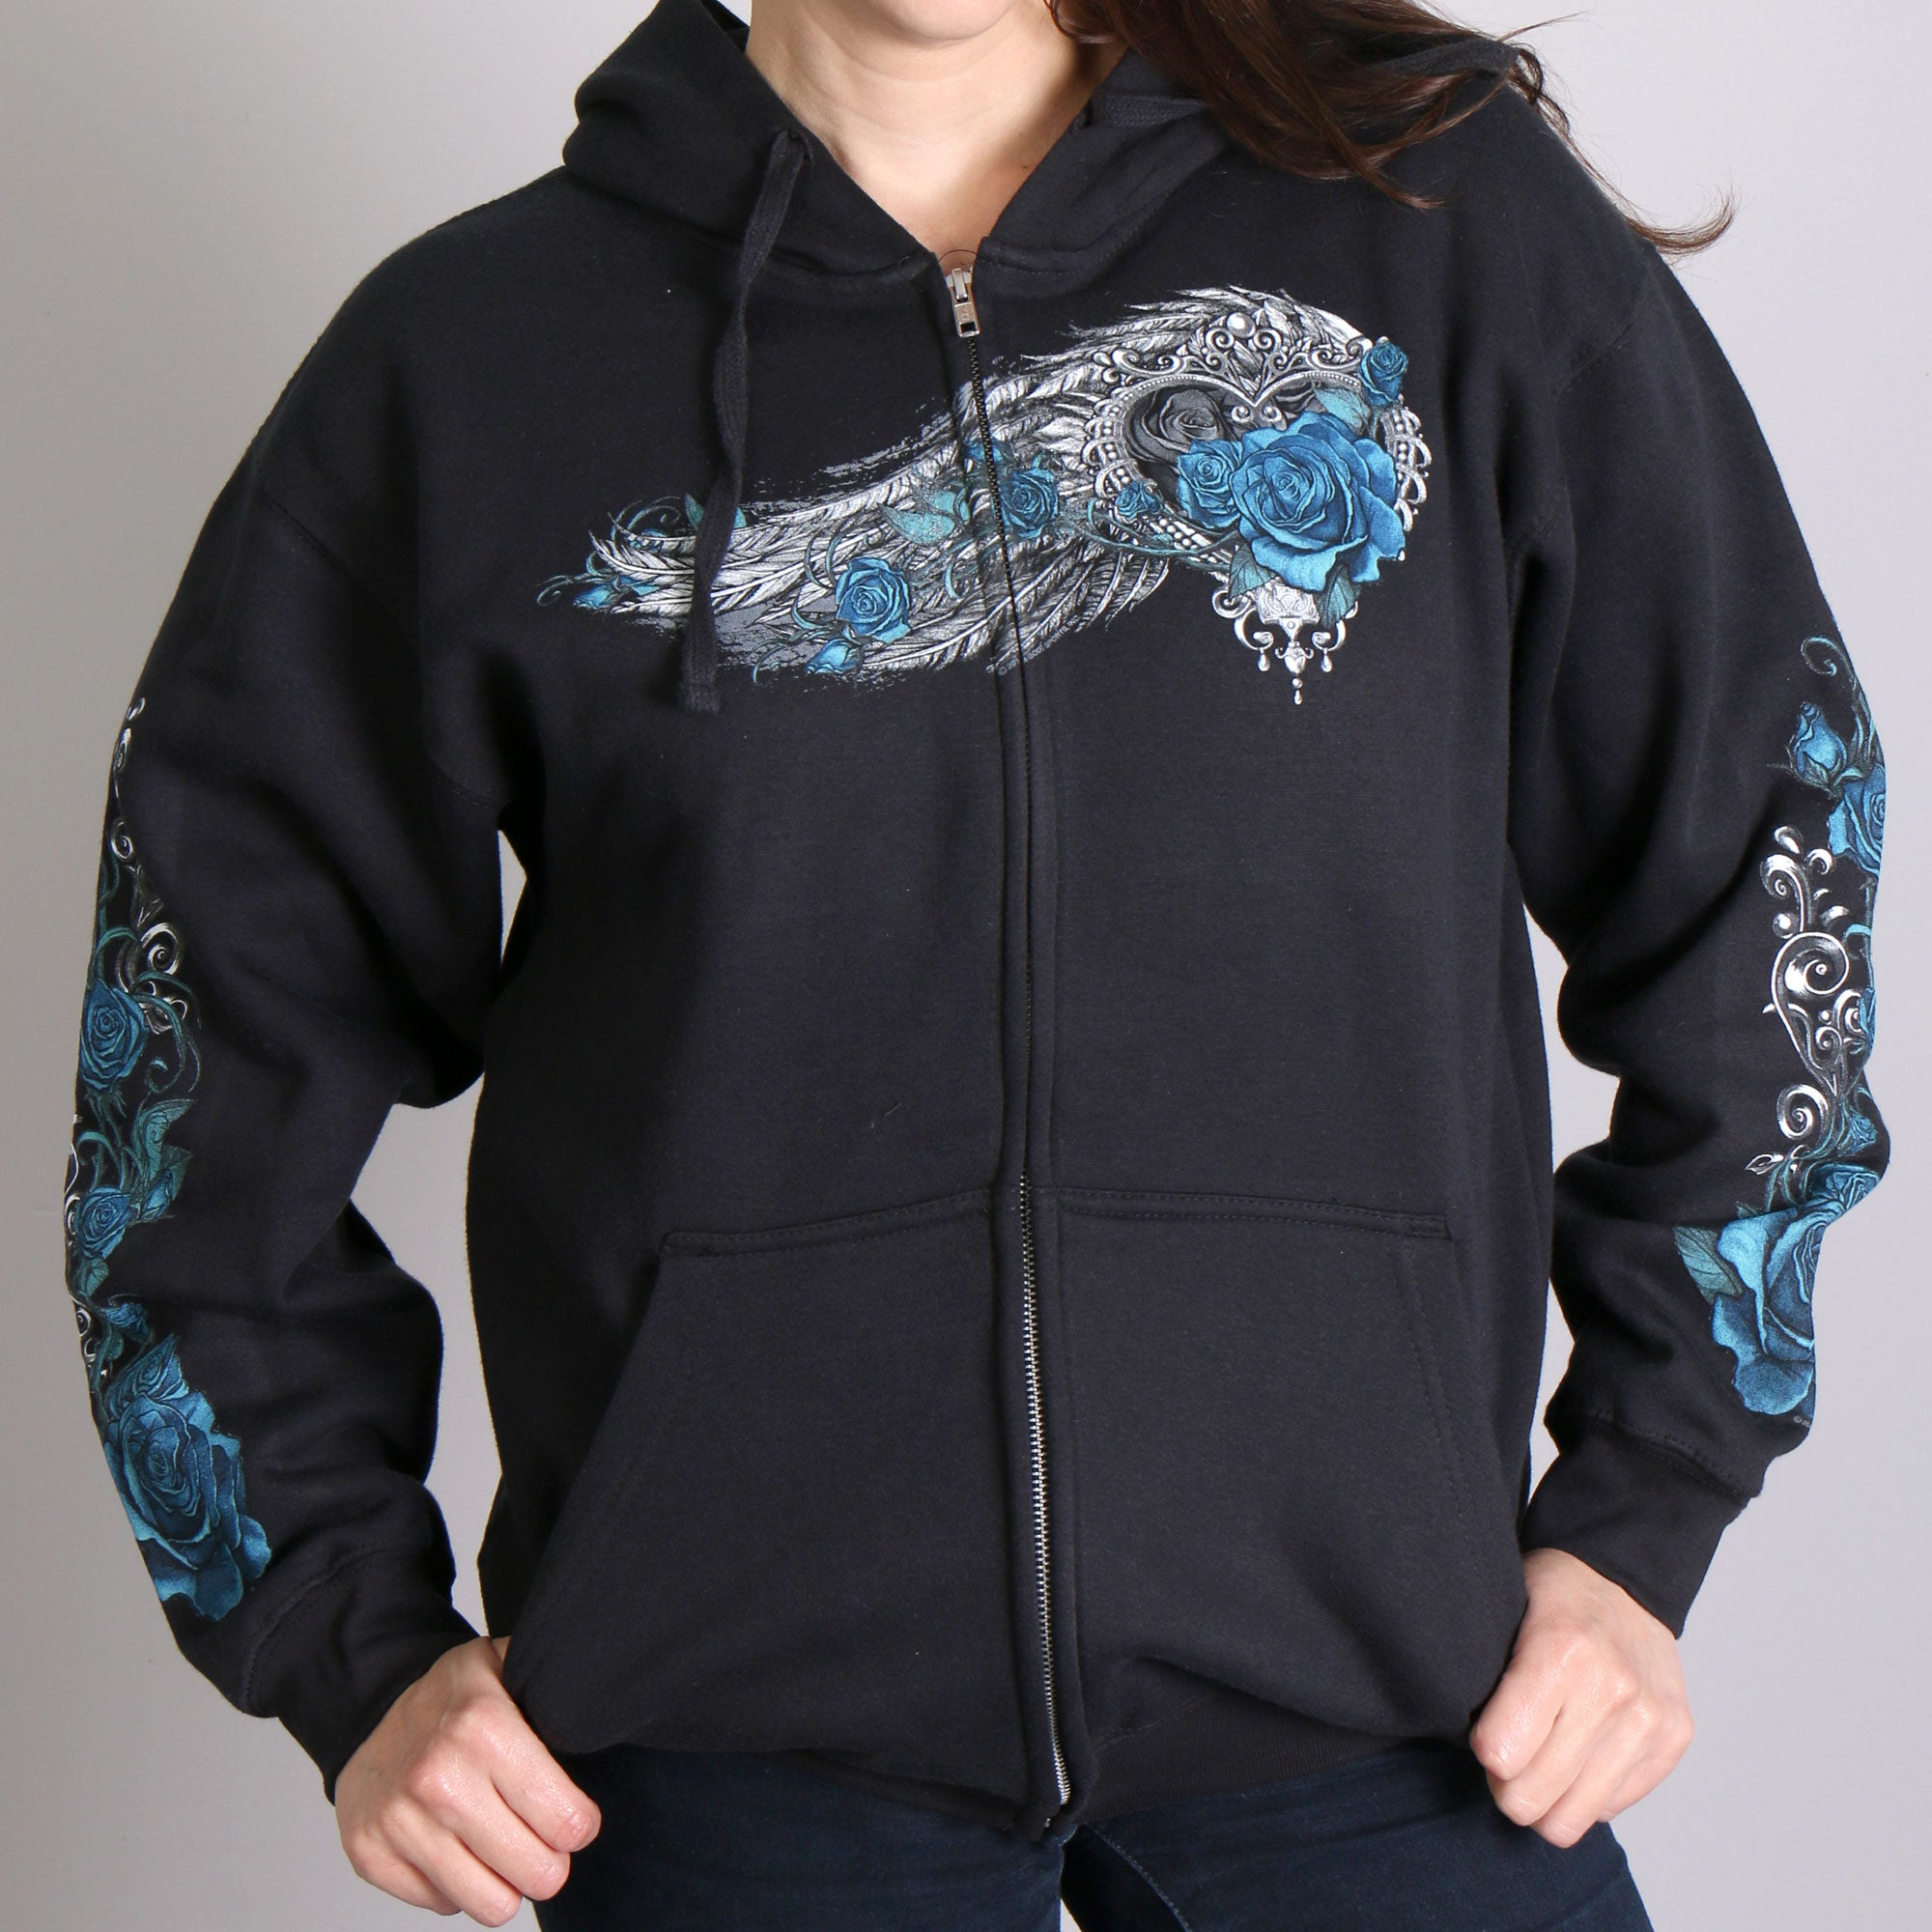 Hot Leathers Angel Roses Zip Up Hooded Ladies Sweat Shirt